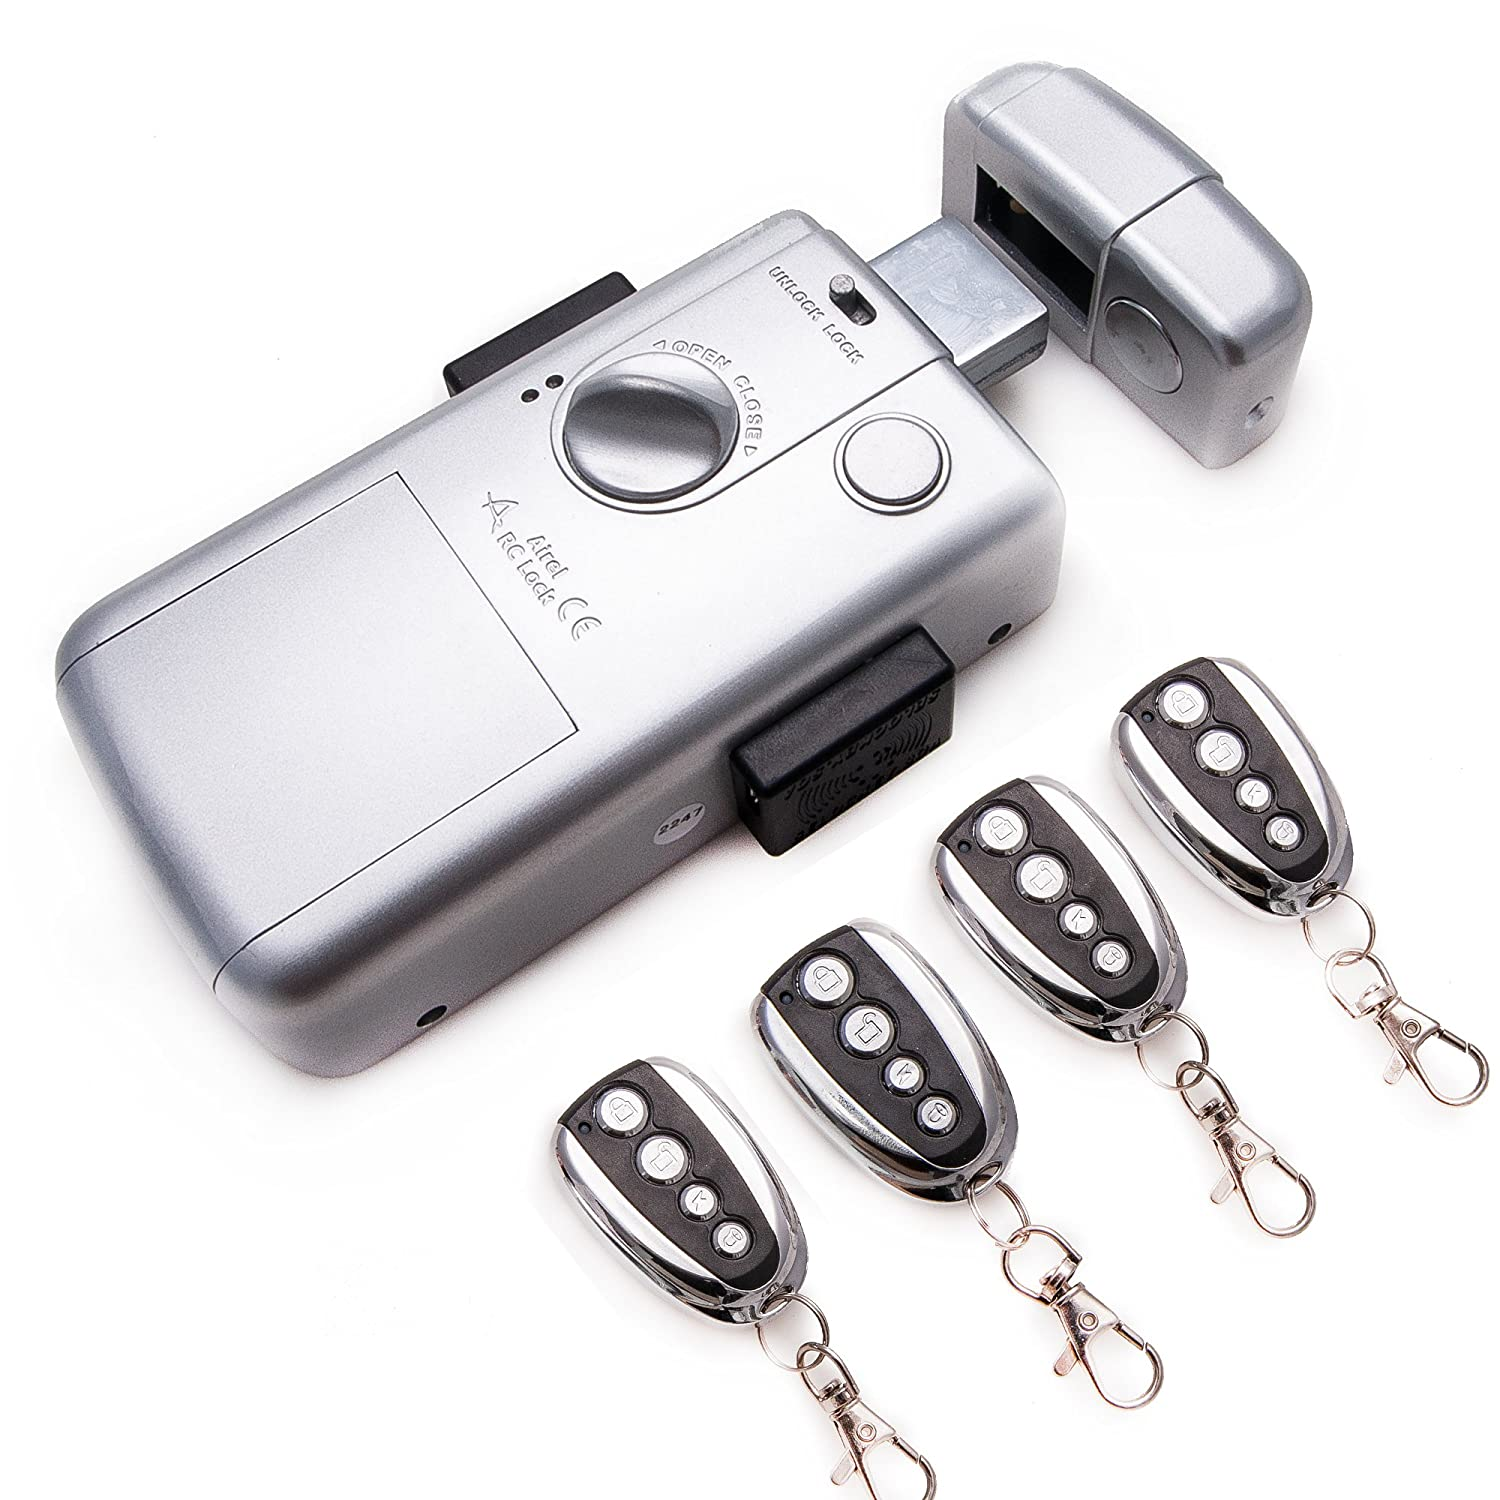 Intelligent Electronic lock, maximum security and invisible, with 4 controls. Silver color. Manufactured by SELOCKEY. - - Amazon.com